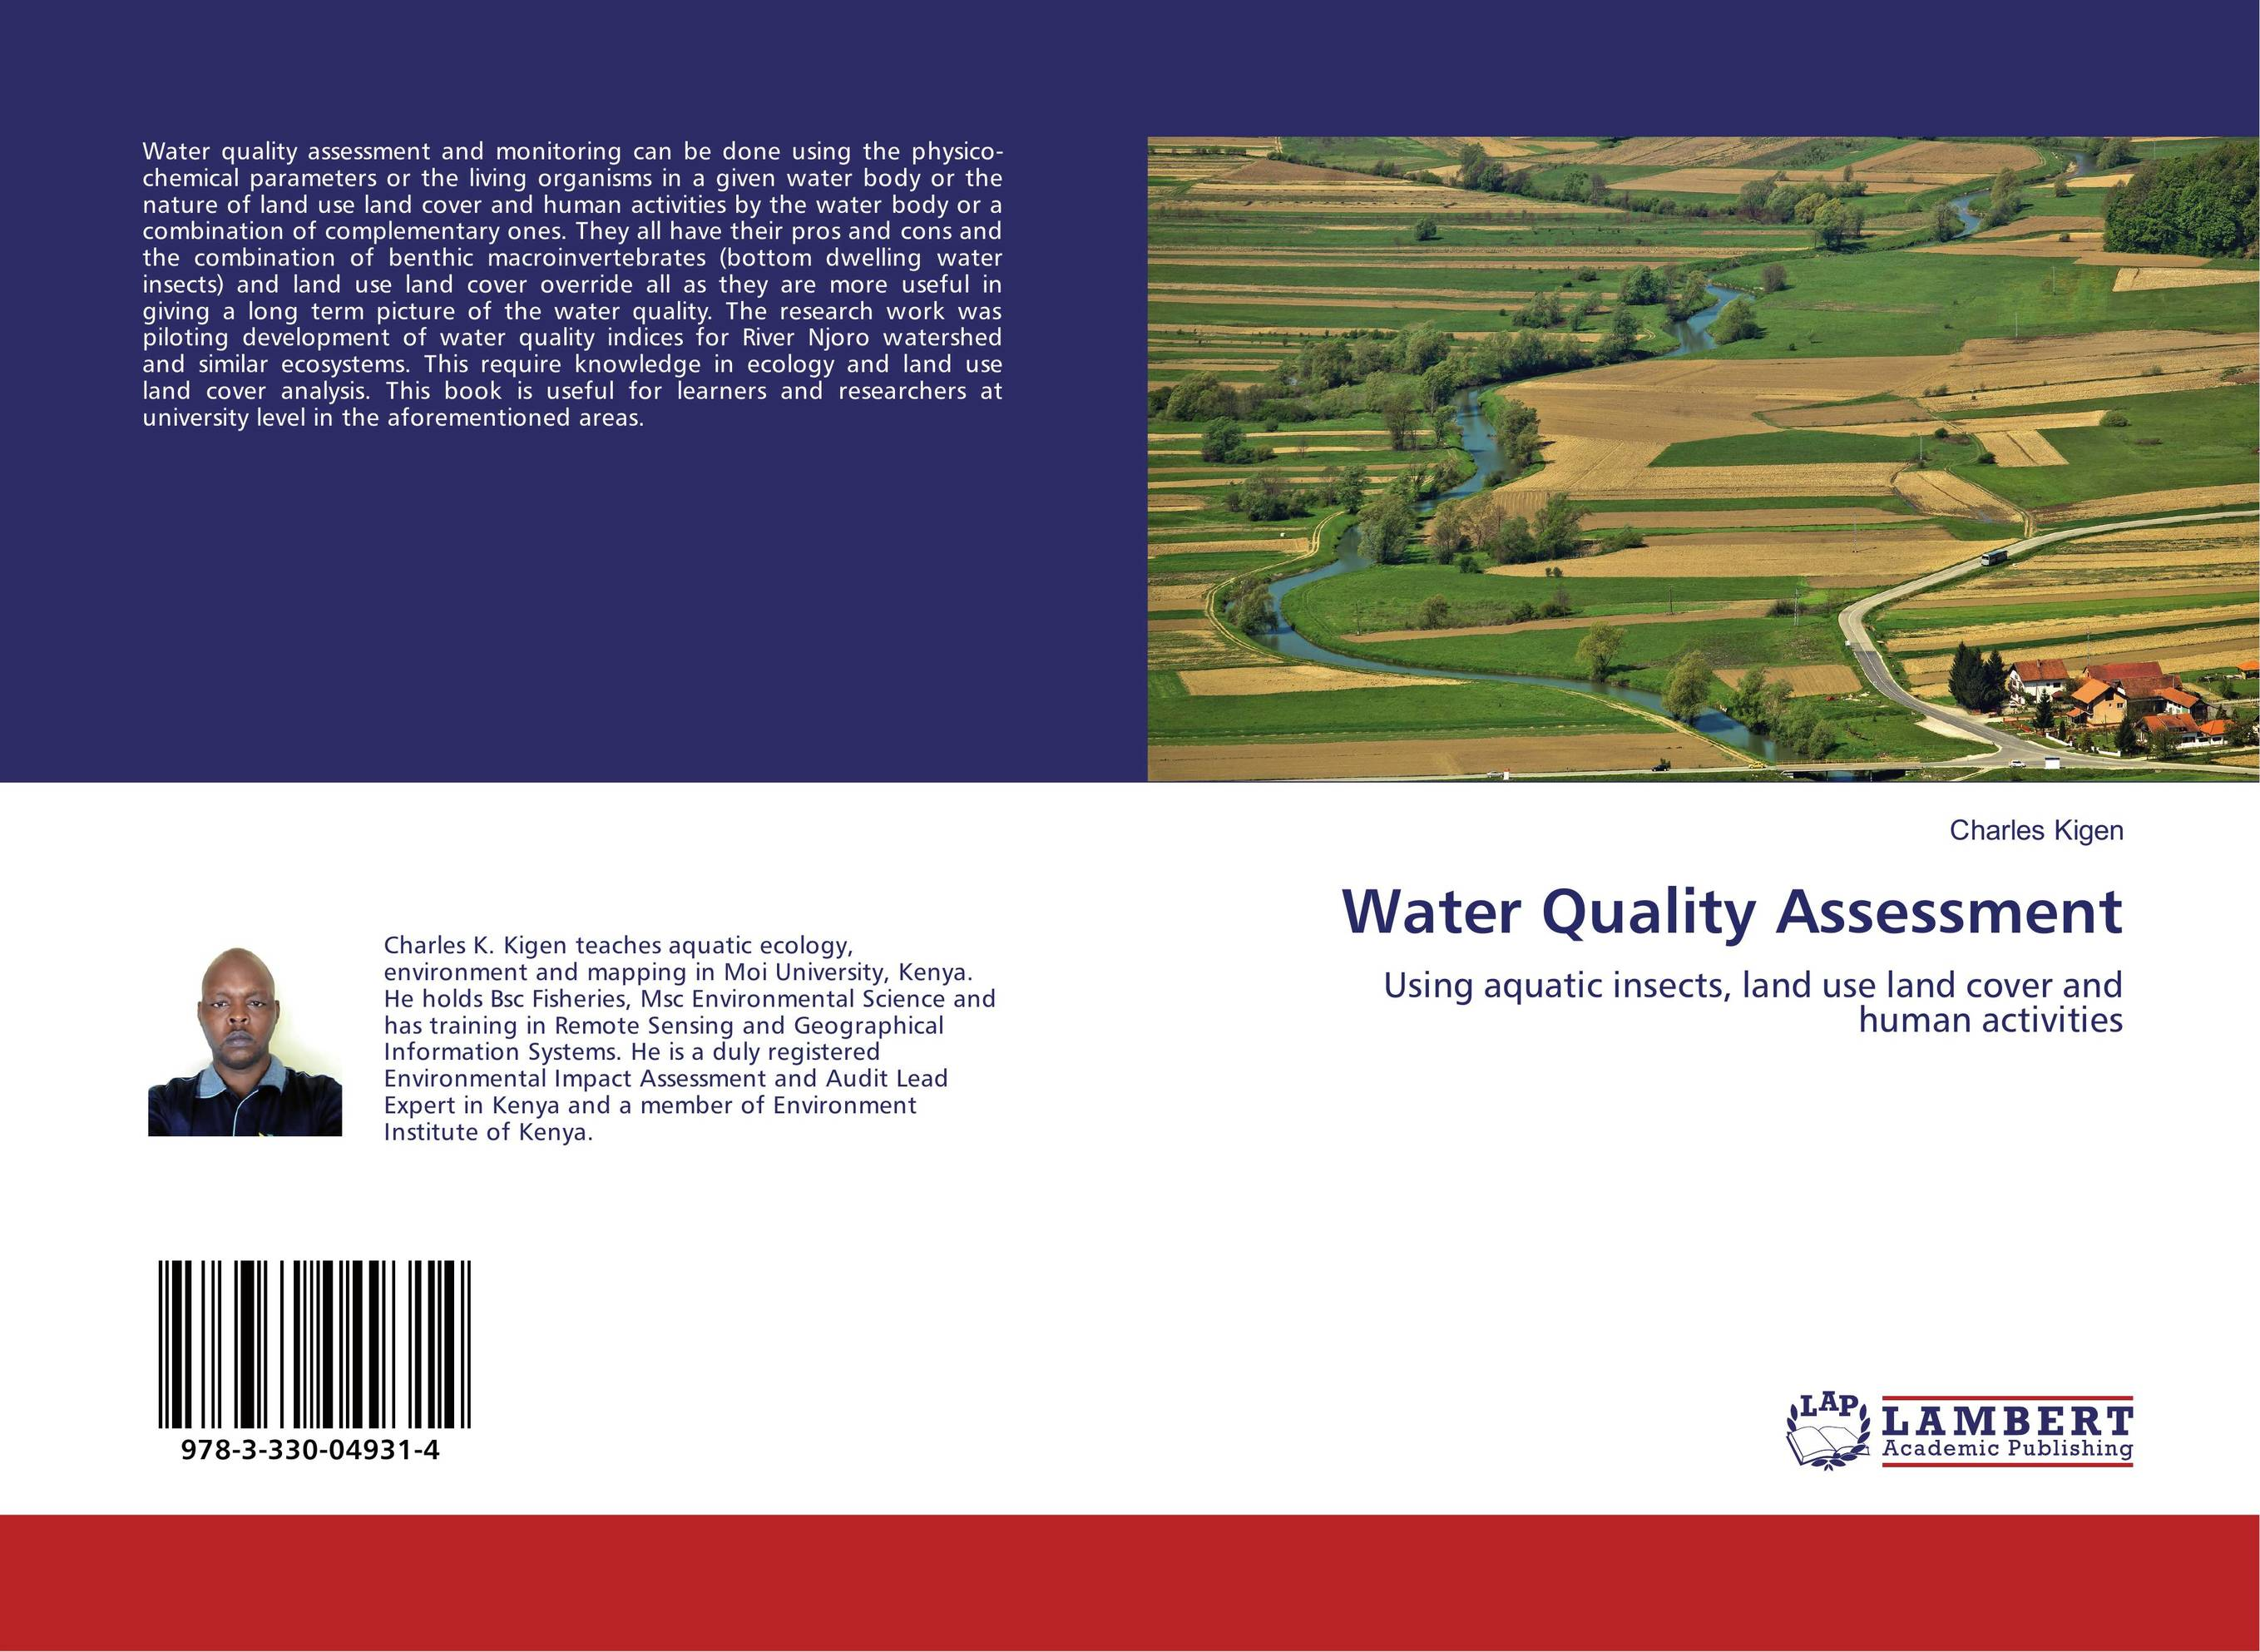 environmental assesment of nigeria Analysis - introduction covering around 1,000 km2 in rivers state, southern nigeria ogoniland has been the site of oil industry operations since the late 1950s.